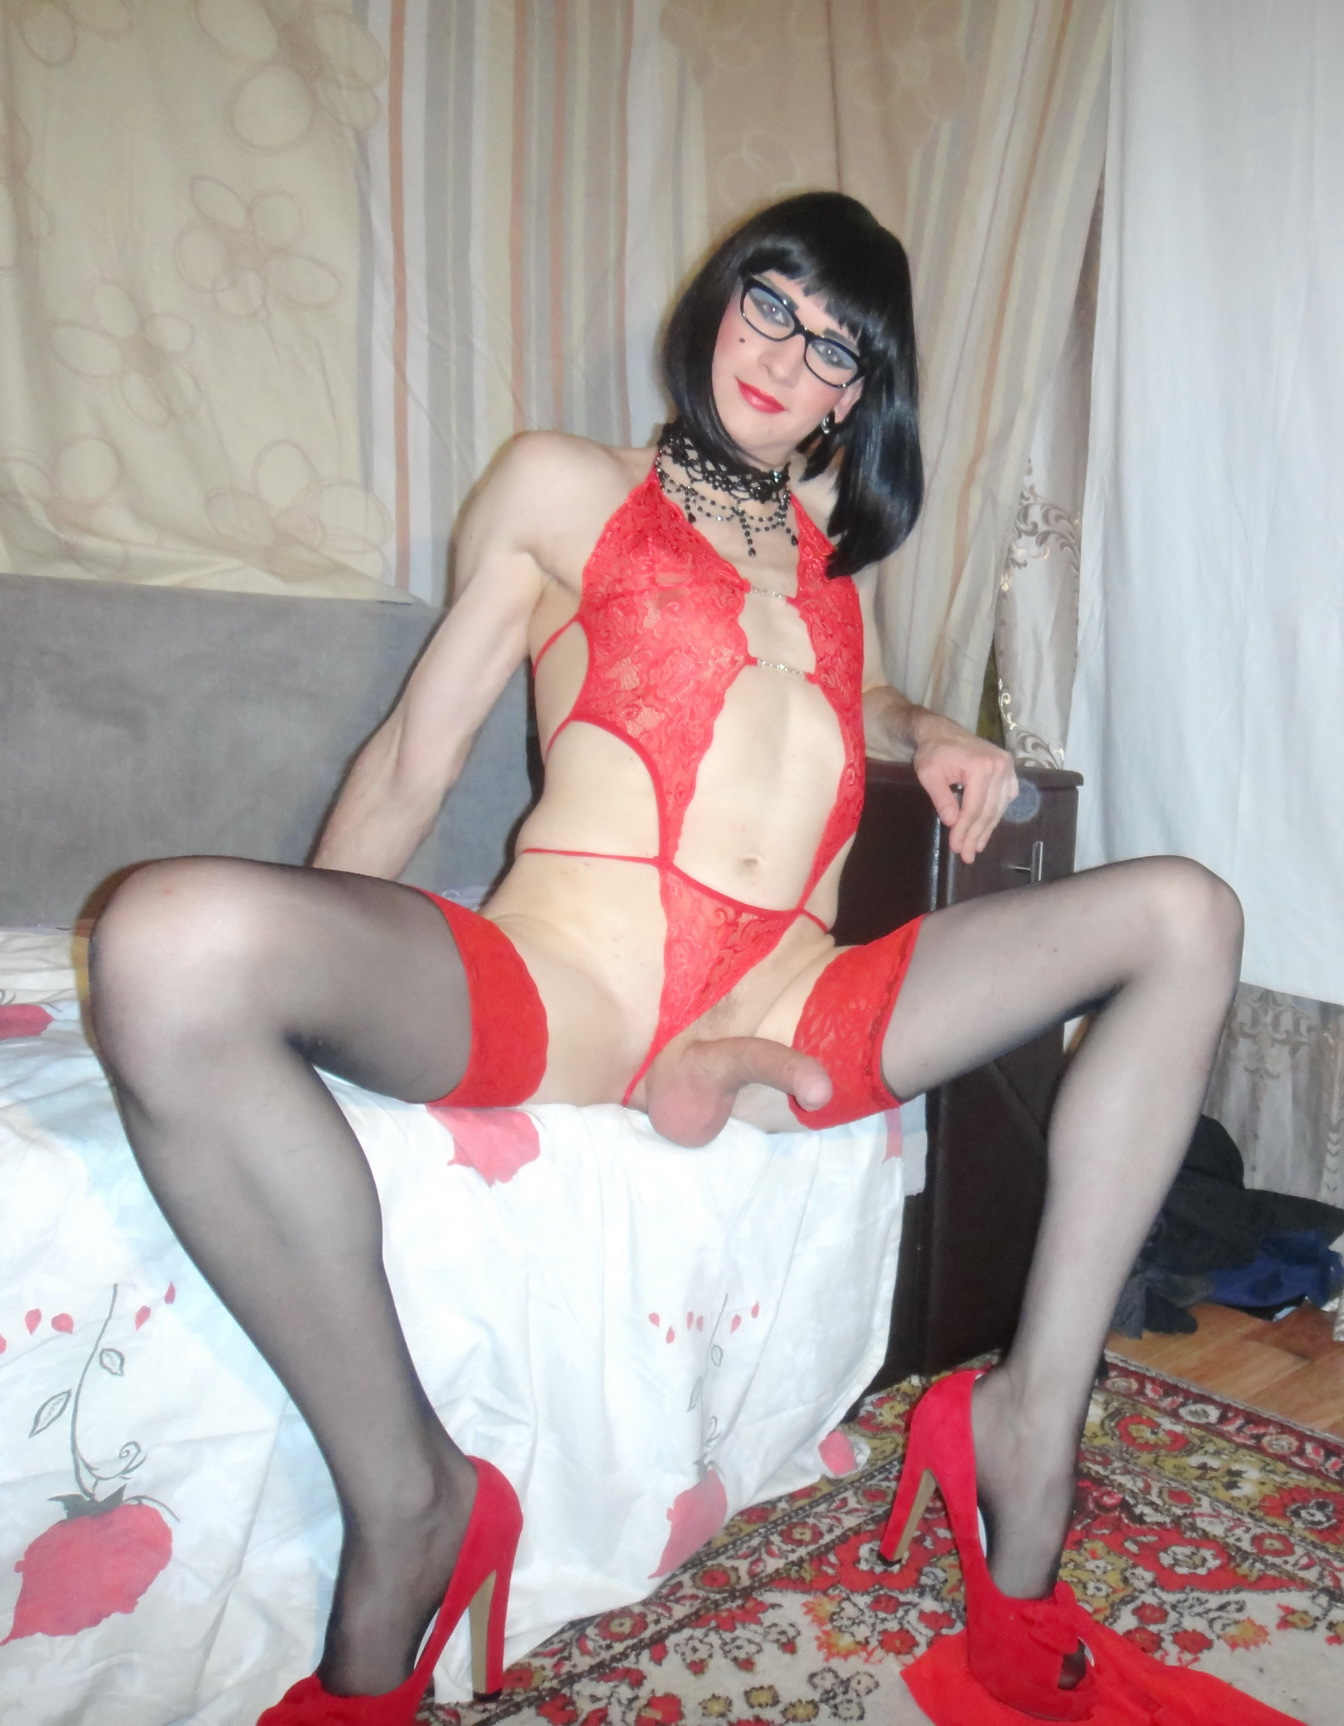 madame caramel a day in the dungeon adult rental